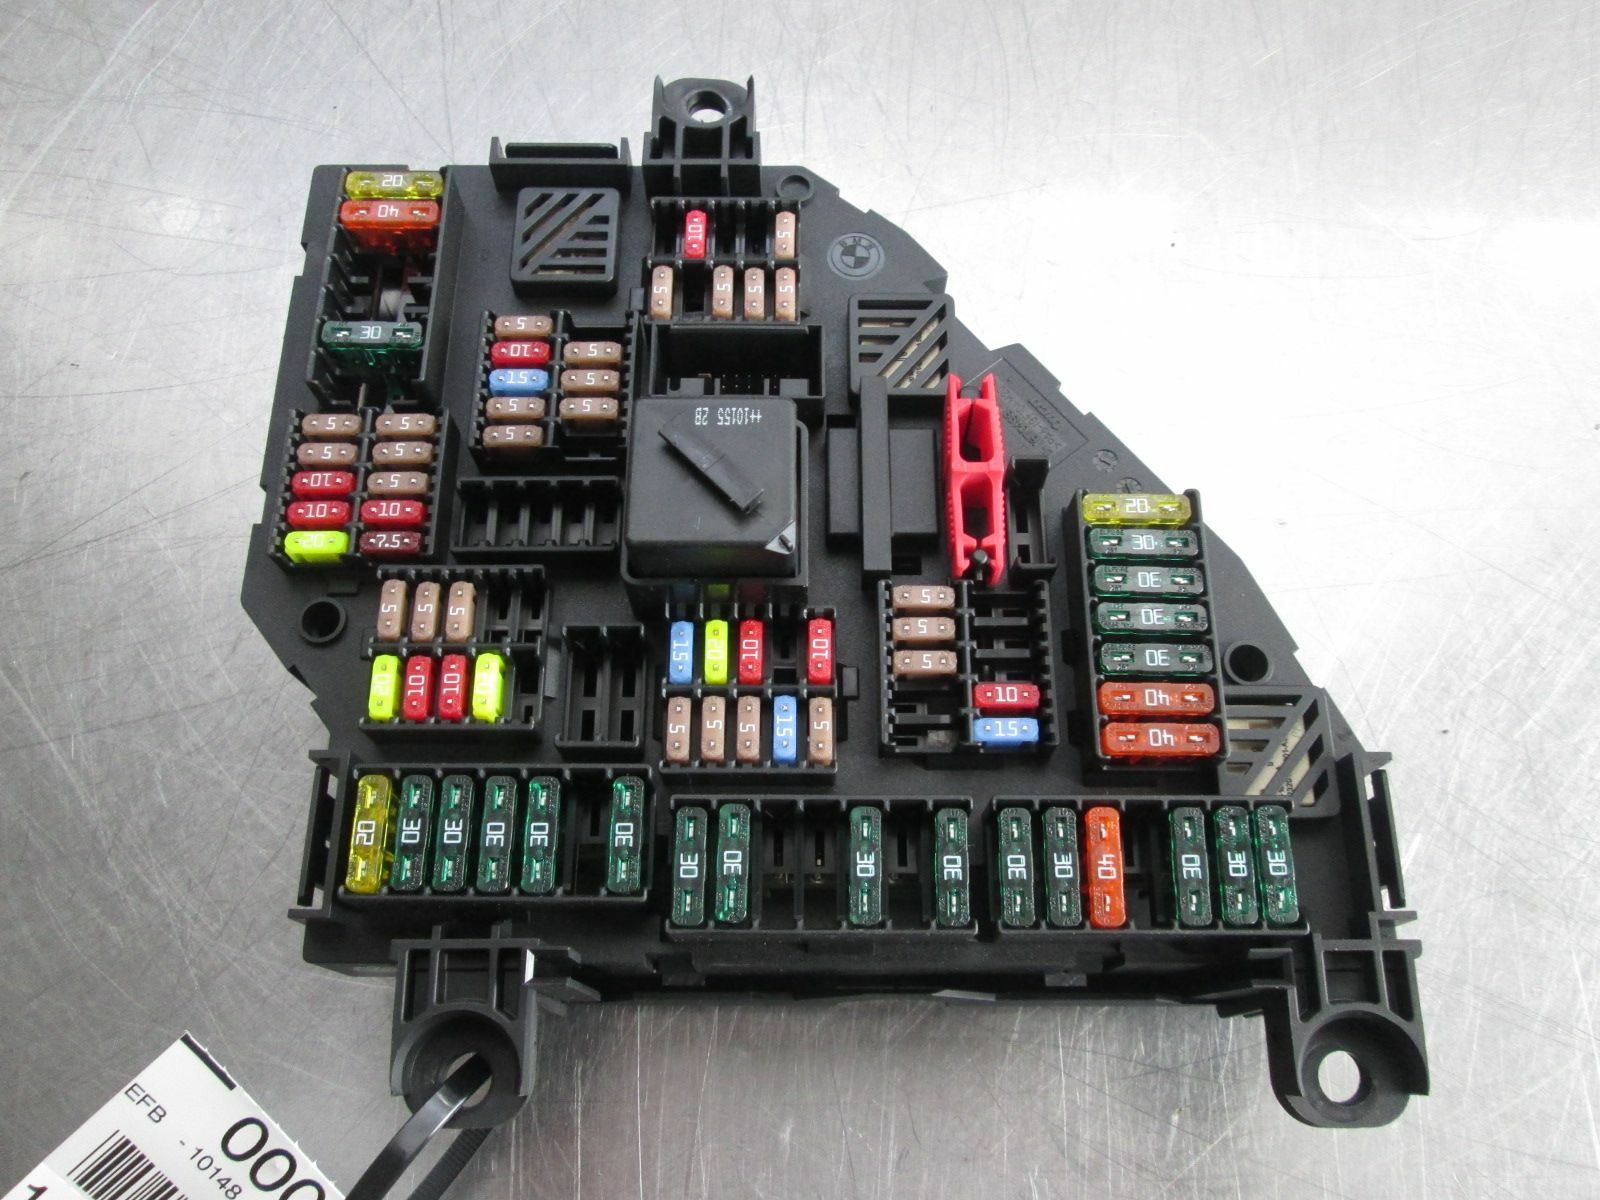 bmw f10 fuse box example electrical wiring diagram u2022 rh tushtoys com Freightliner Fuse Box Location 1984 Corvette Fuse Box Location